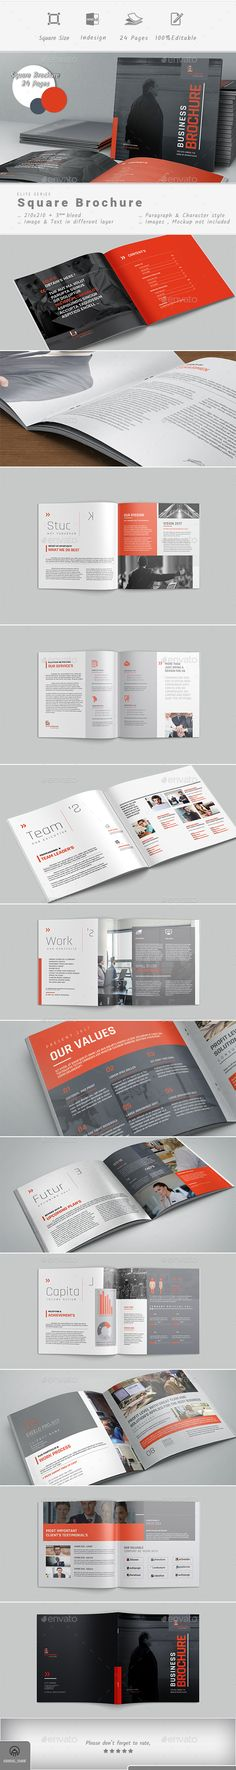 Corporate Brochure Design Template - Corporate Brochures Design Template InDesign INDD. Download here: https://graphicriver.net/item/brochure/19446315?ref=yinkira